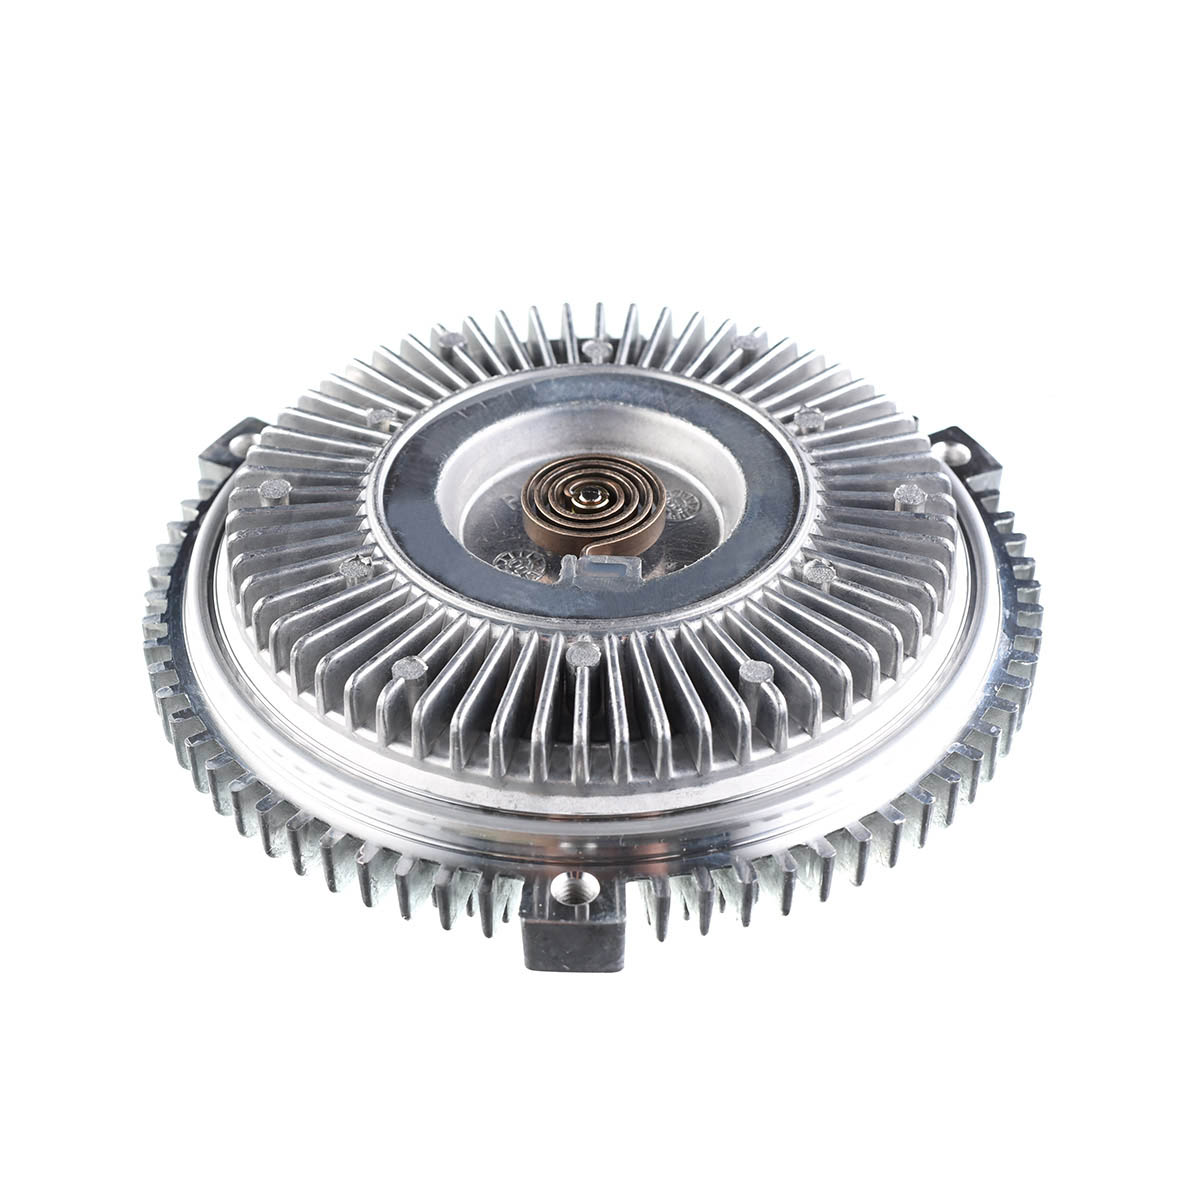 small resolution of engine cooling fan clutch for bmw e31 e32 e34 e38 e39 530i 540i 740i 750il 840ci 11527502804 11521723829 11521745134 in fans kits from automobiles